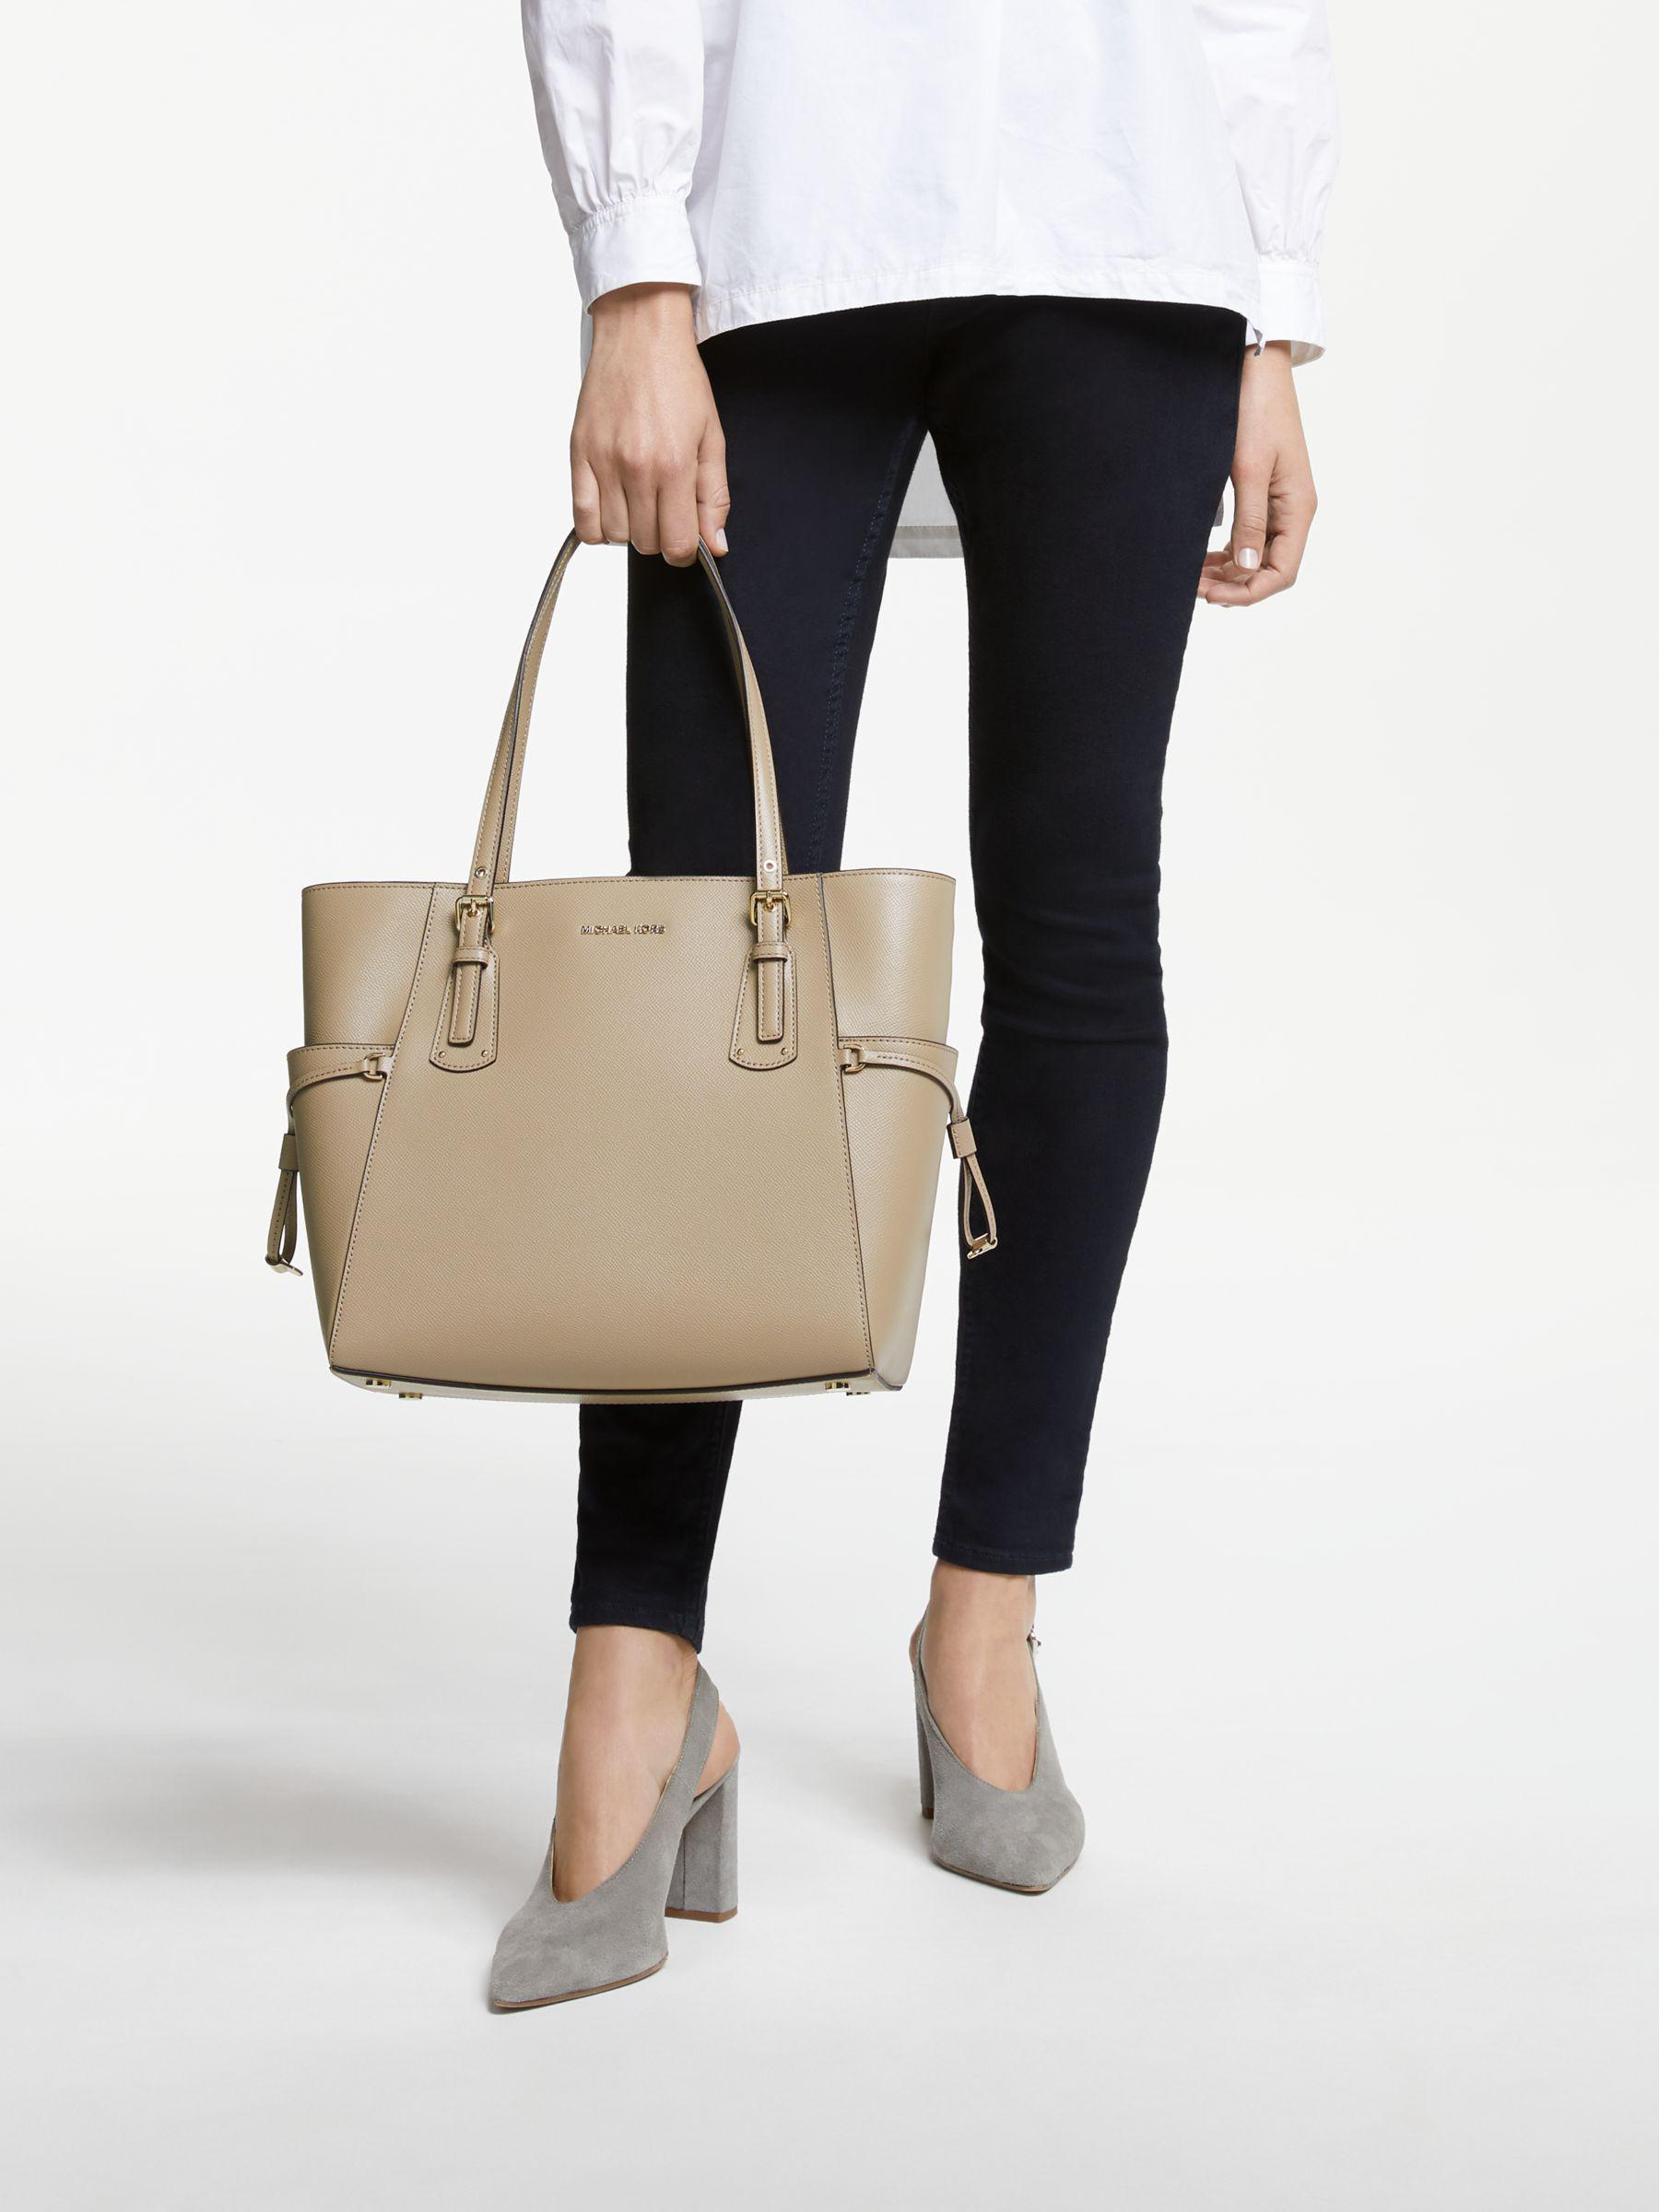 74f153afe4c3 Michael Kors - Multicolor Michael Voyager East West Leather Tote Bag -  Lyst. View fullscreen